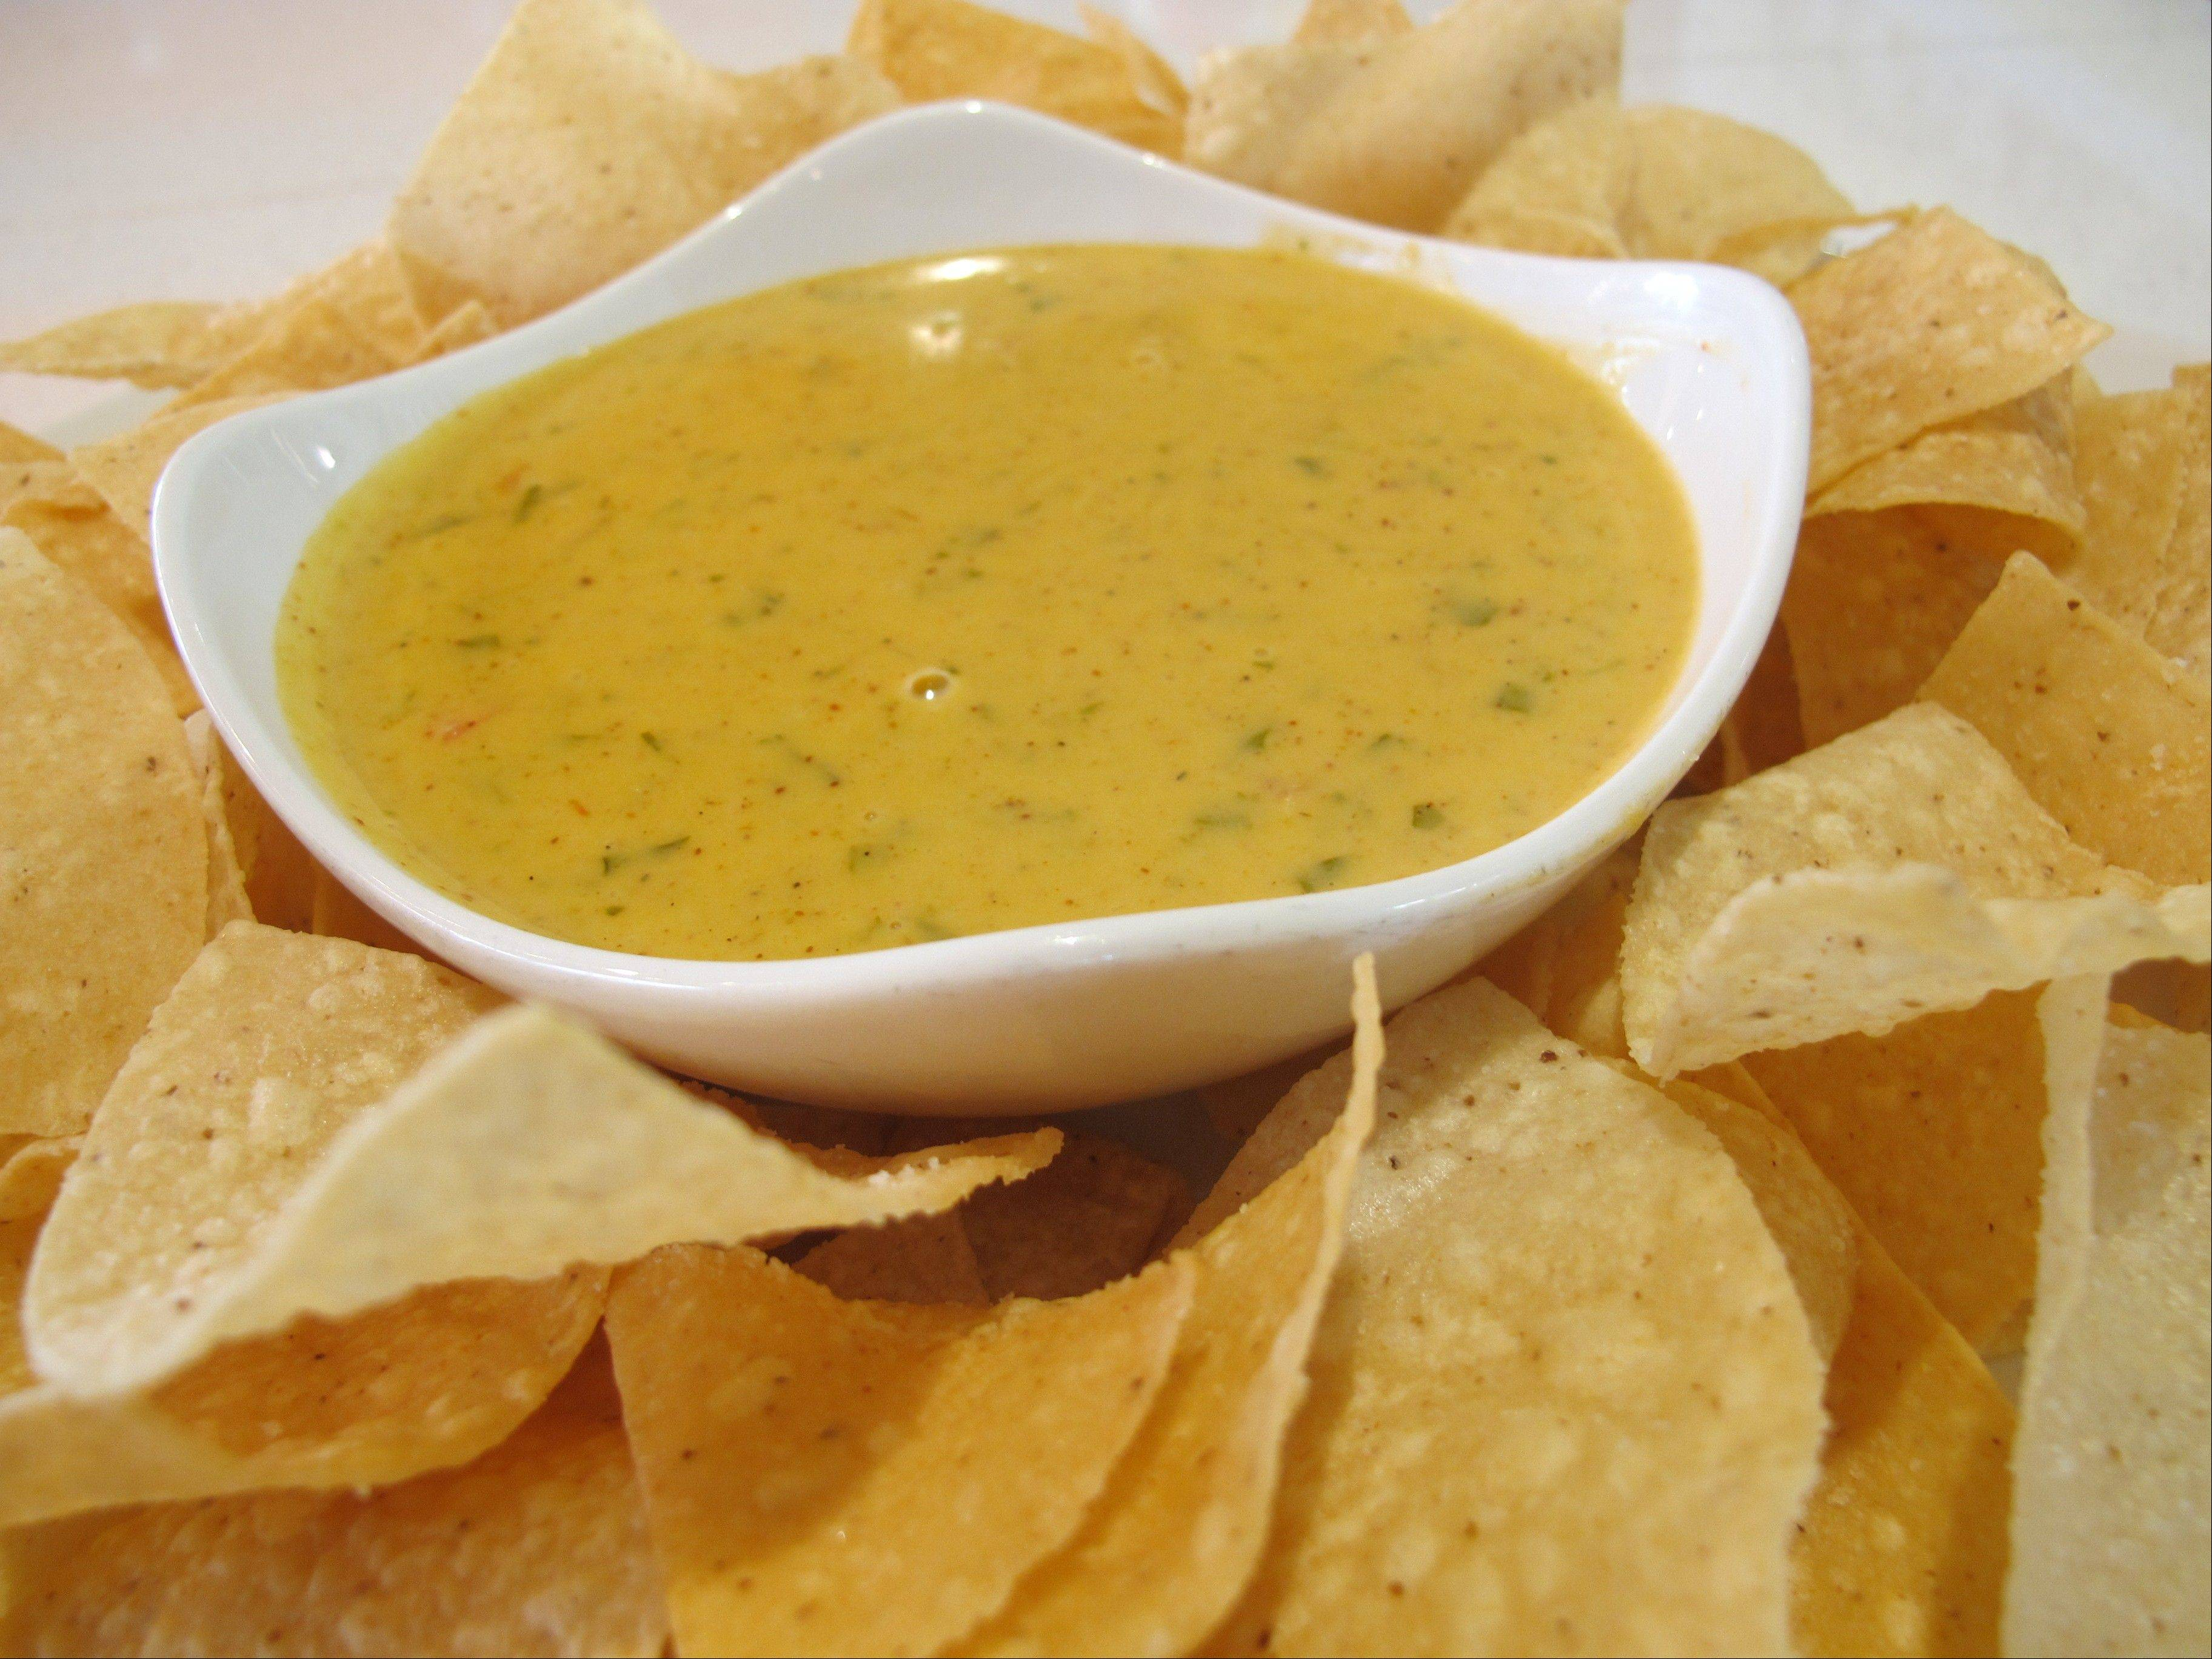 Cheese dip is served with tortilla chips at Big Orange in Little Rock, Ark. Big Orange is known for gourmet burgers, quality draft beer and tempura asparagus, but their creamy cheese dip is a crowd-pleaser.